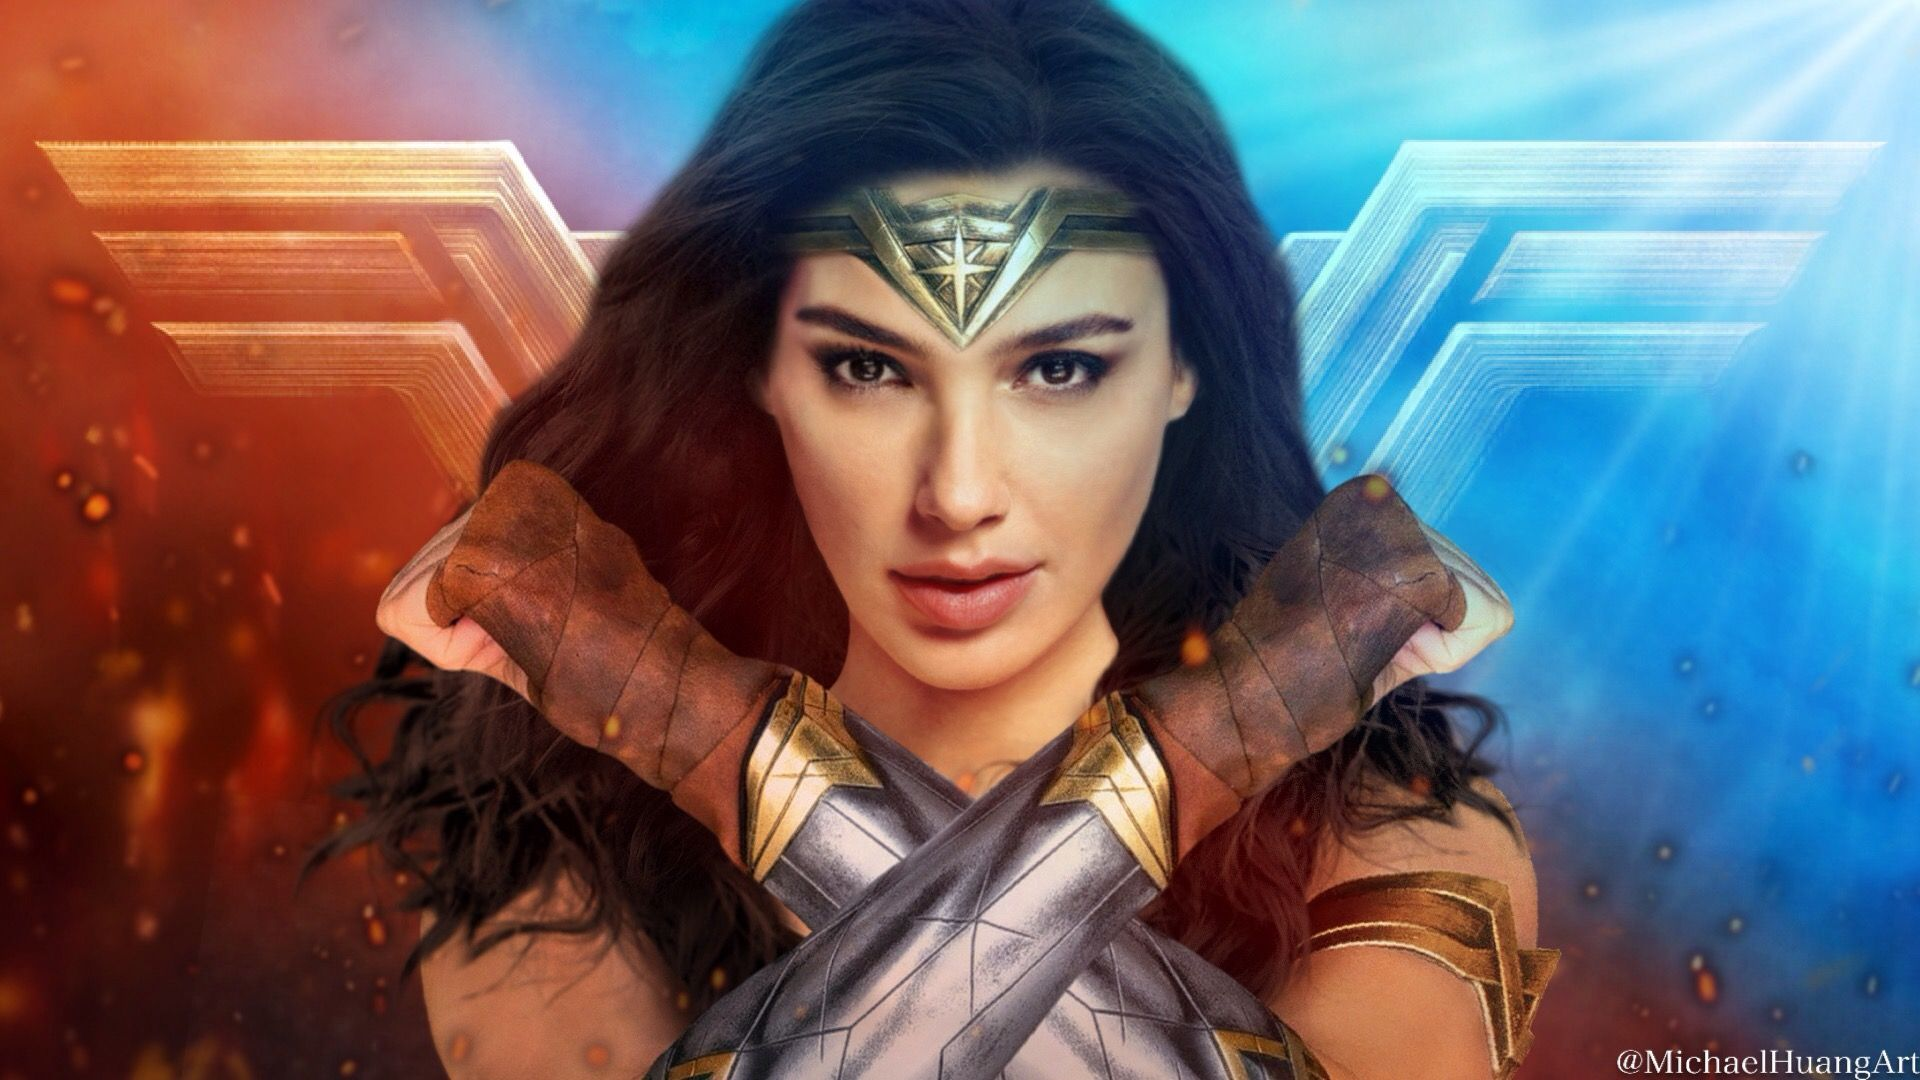 [1920x1080] Wonder Woman Wallpaper | wallpapers ... Wallpapers Women